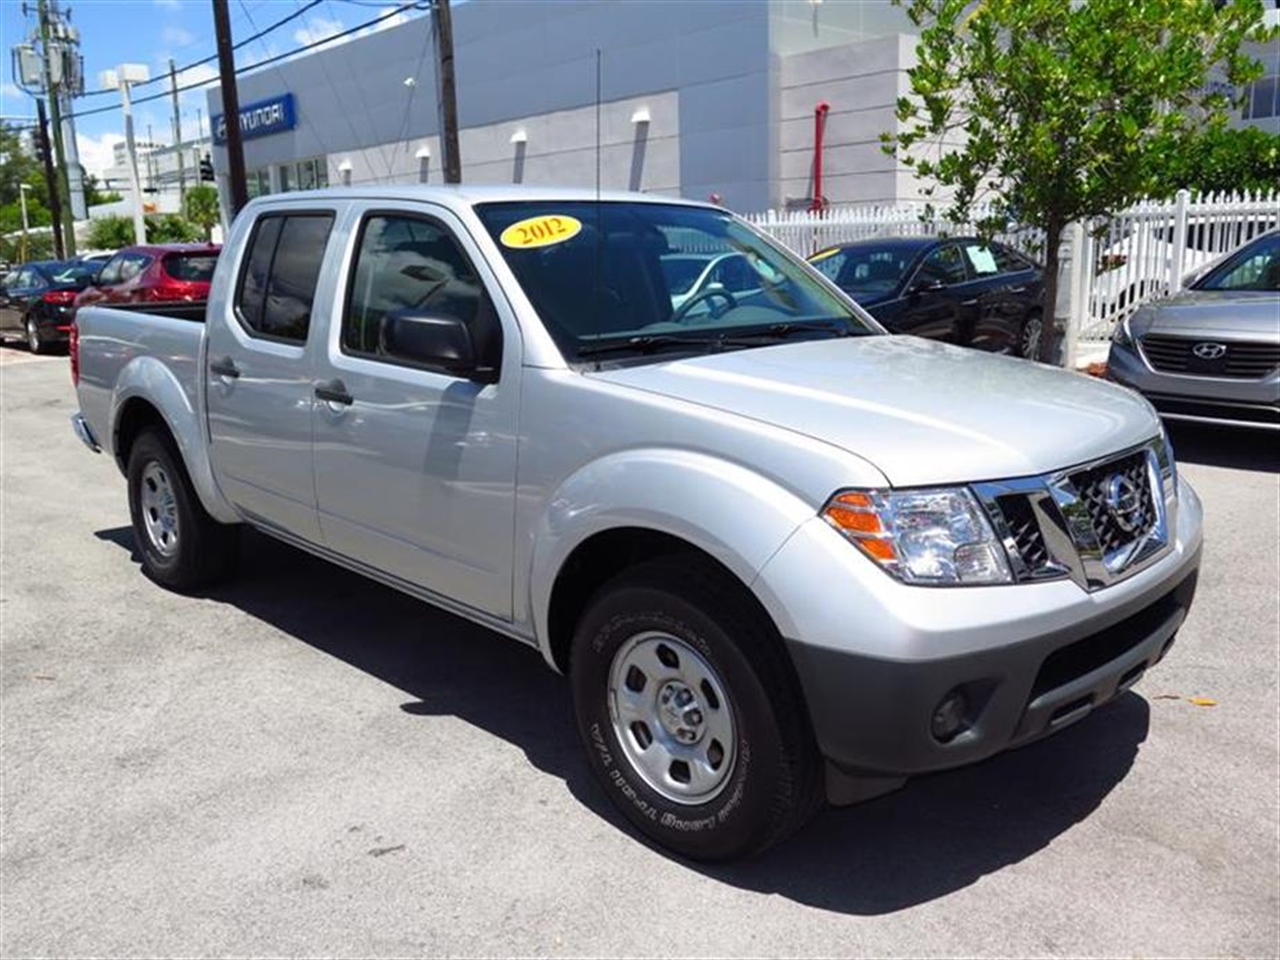 2012 NISSAN FRONTIER 2WD Crew Cab SWB Auto S 36892 miles 2 auxiliary pwr outlets 6040 split r